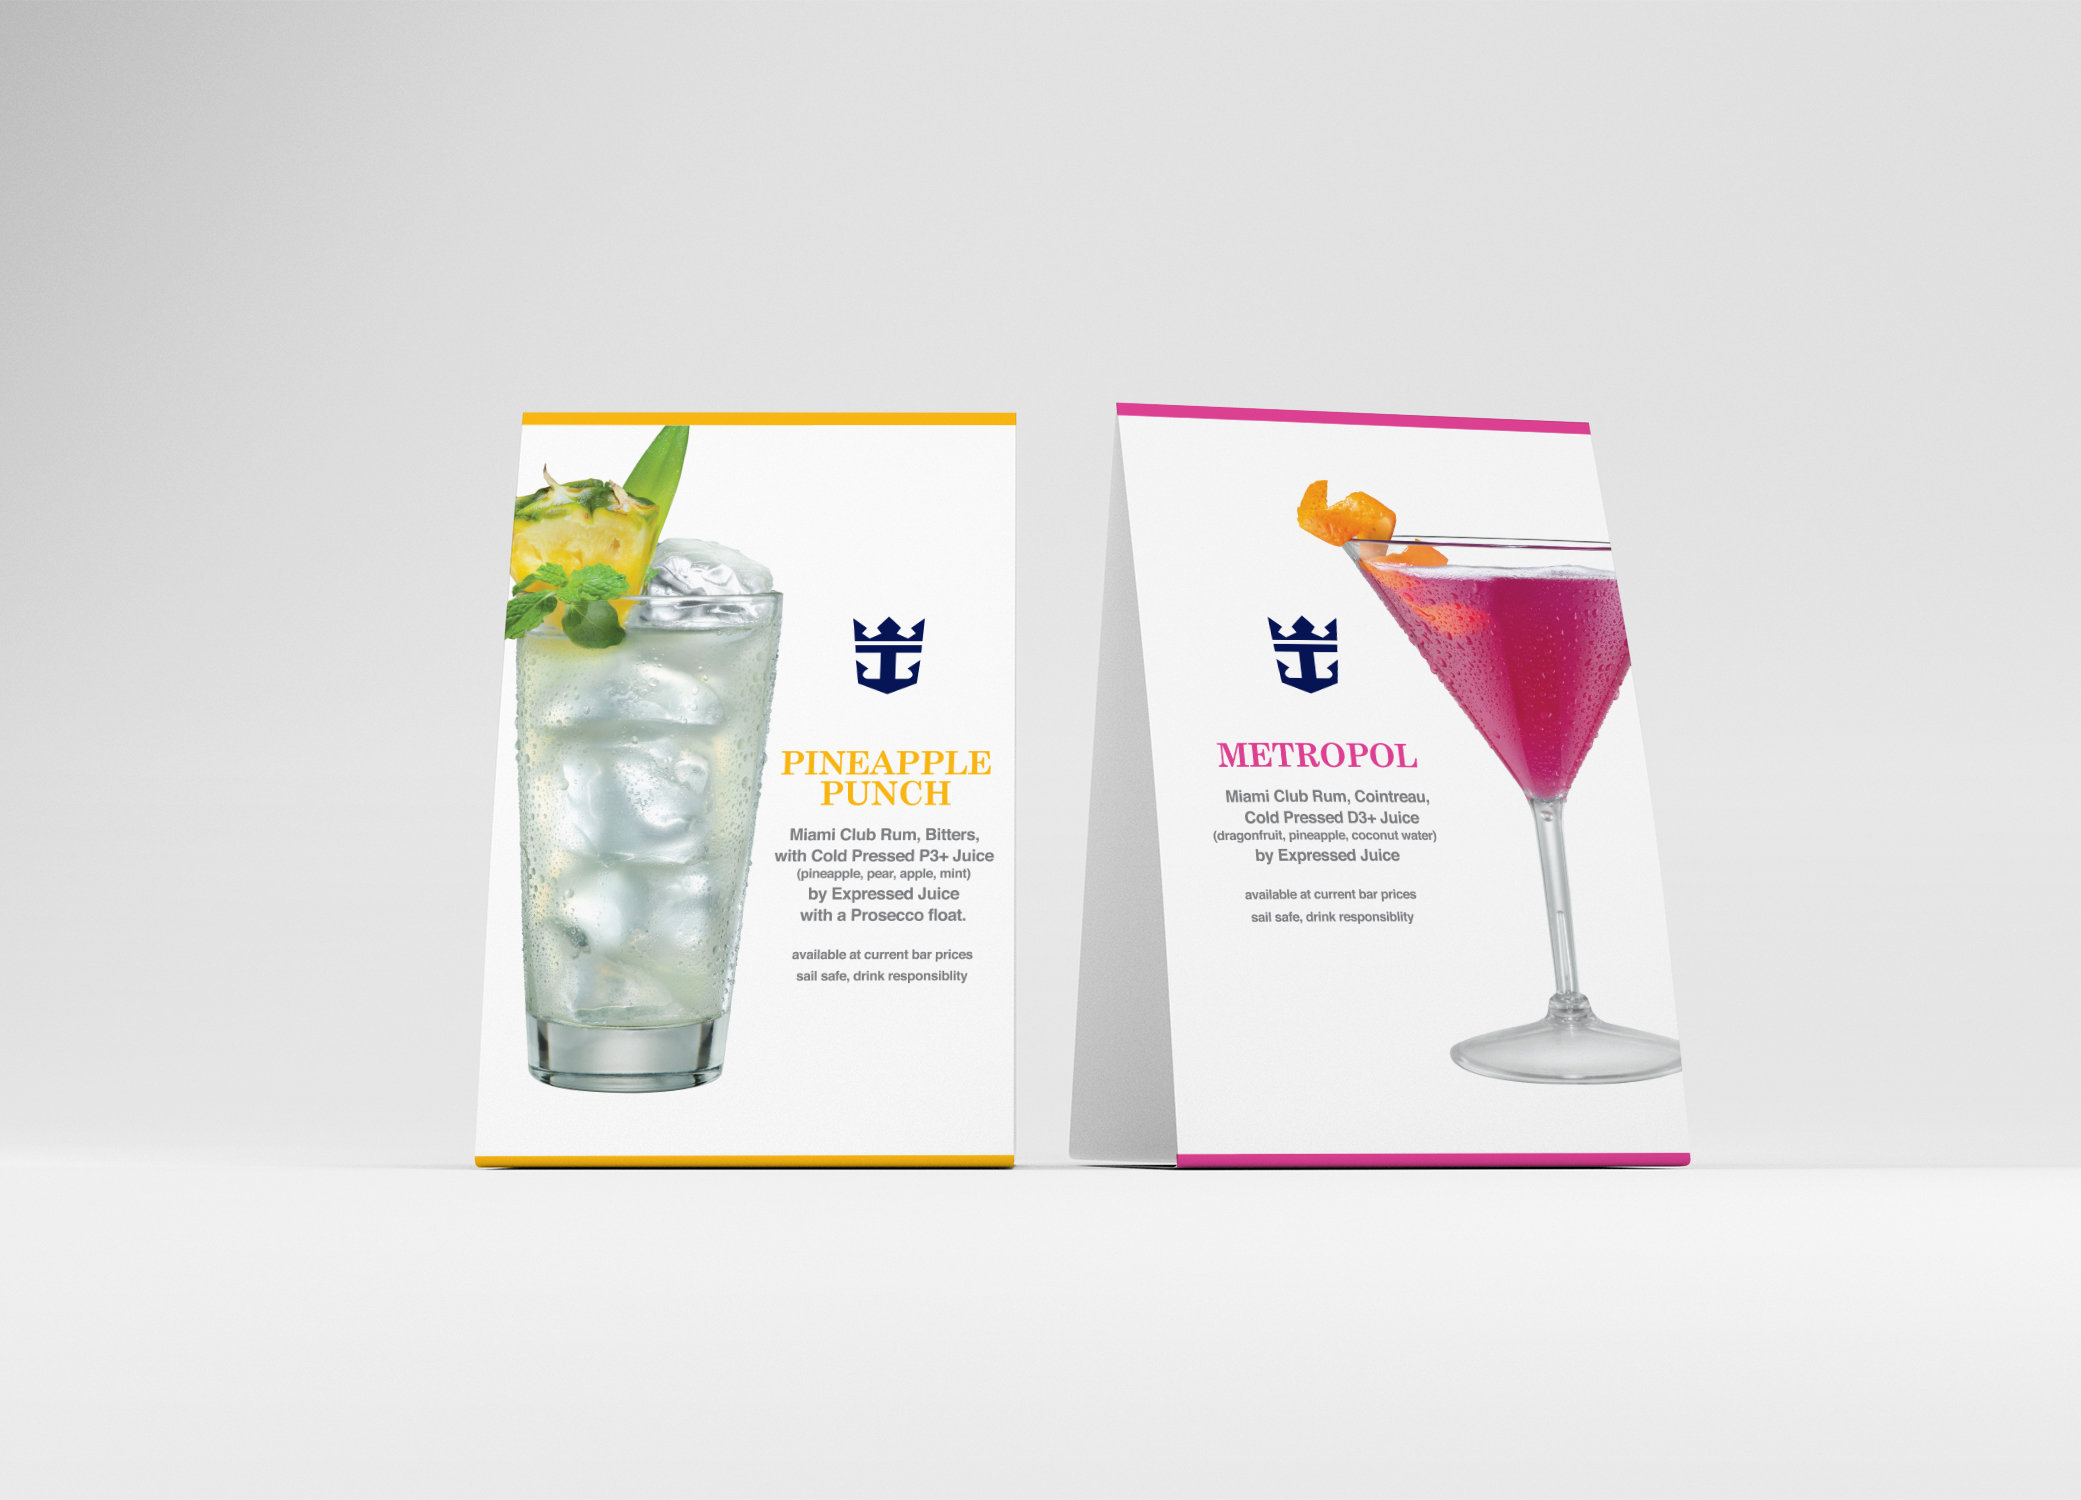 Expressed Juice table talkers promoting Pineapple Punch and Metropol alcoholic beverages against grey backdrop.